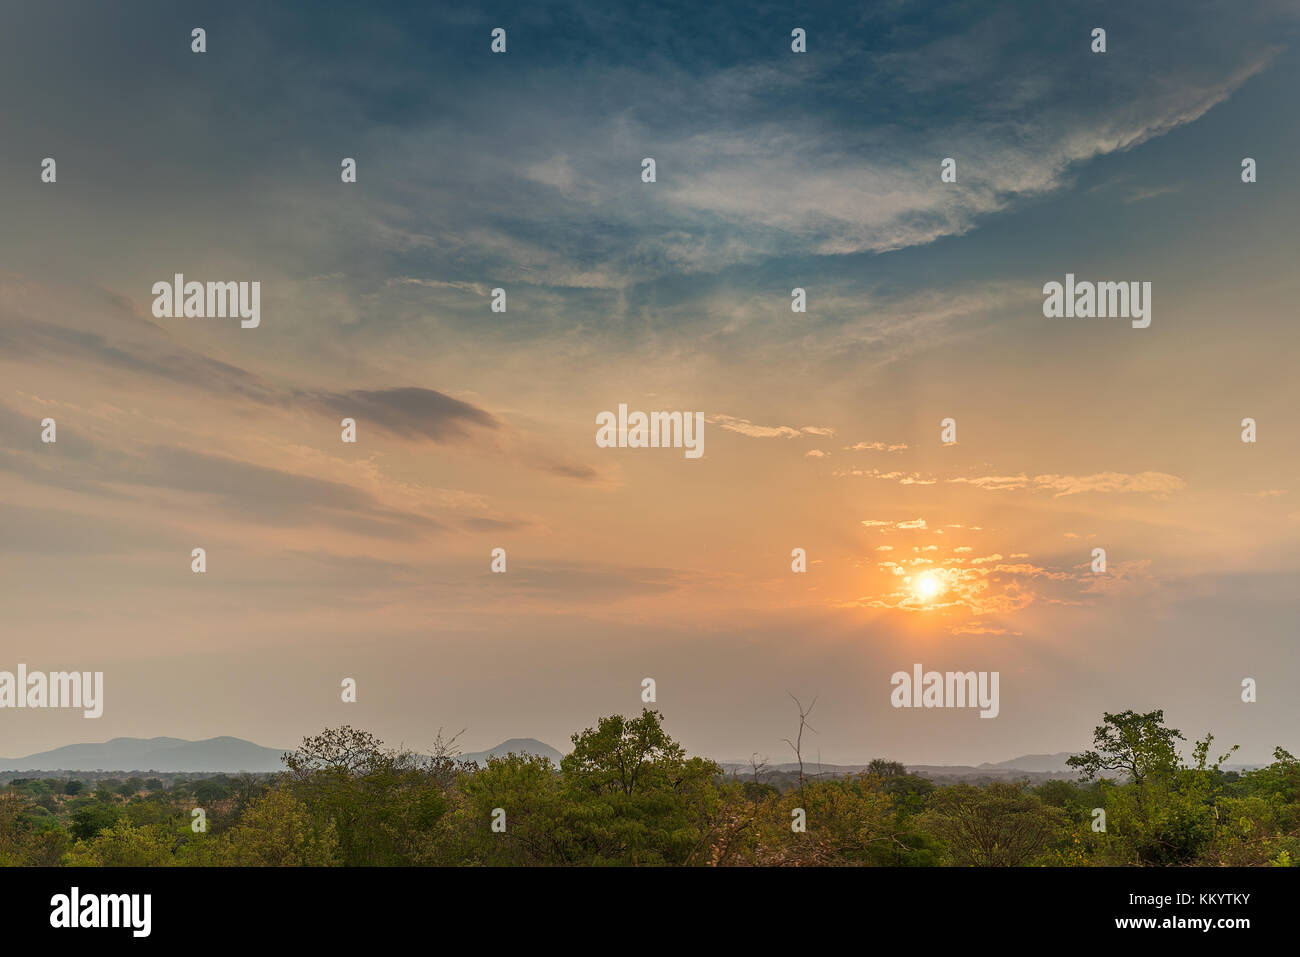 African landscape in Lubango, Angola with mountains and dramatic sunset. - Stock Image